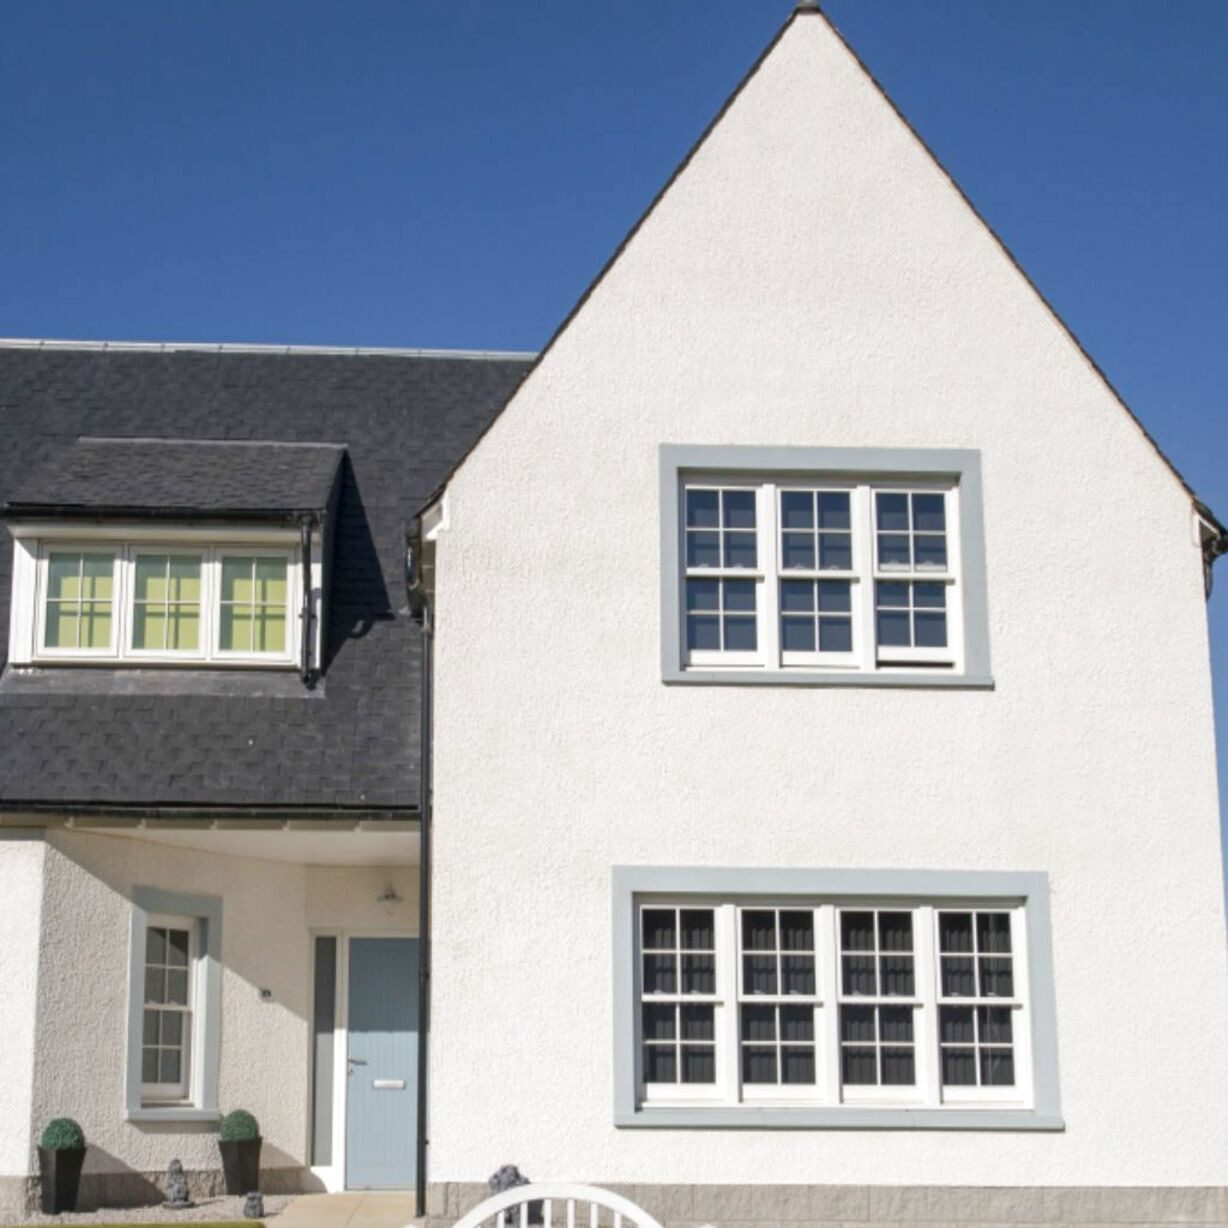 k rend for sale